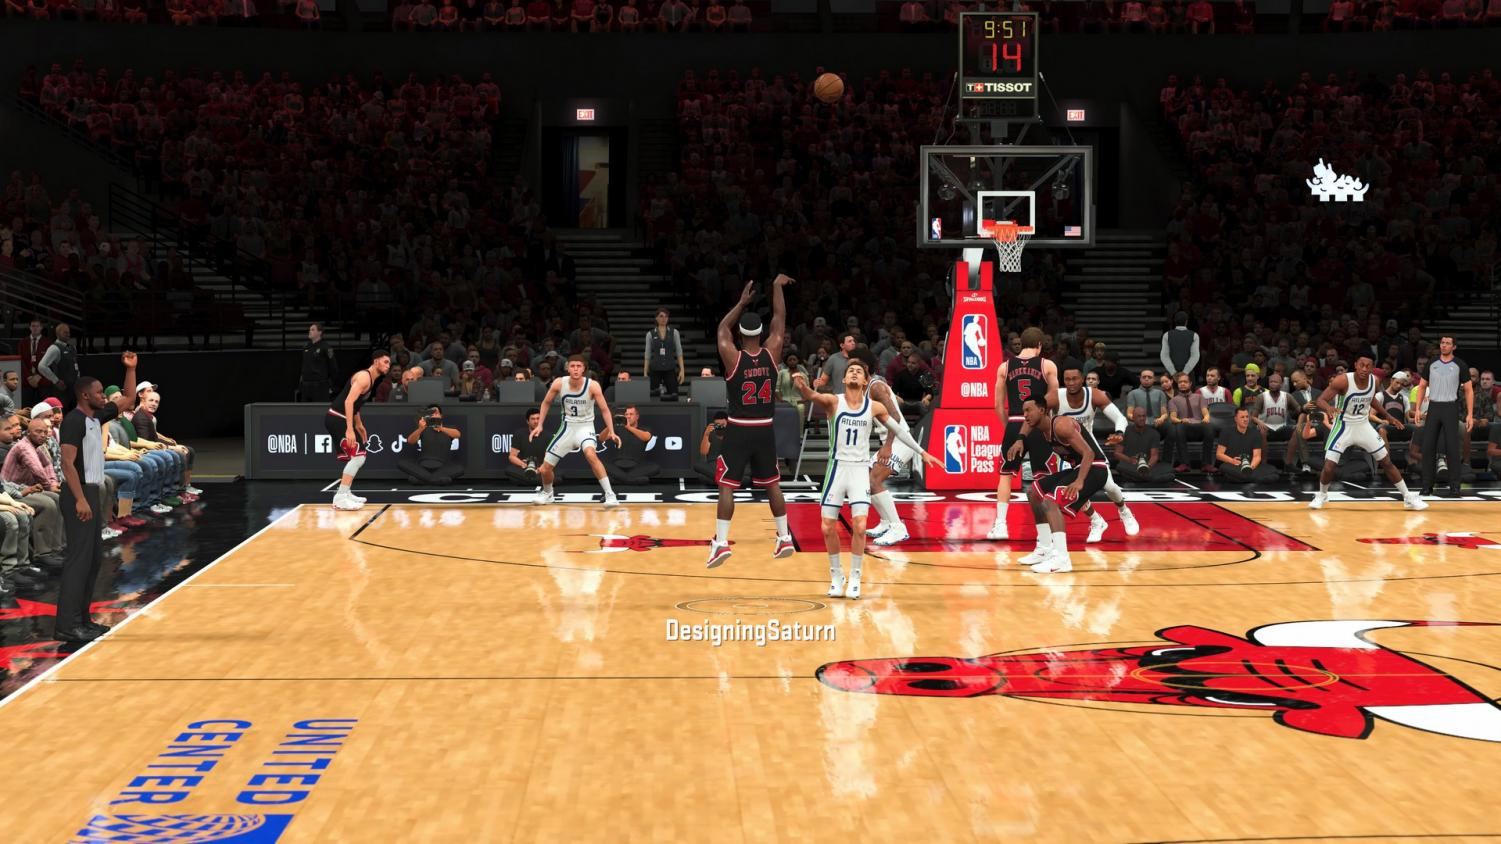 Jay%27len+Collins+making+a+free-throw+in+NBA+2K21.